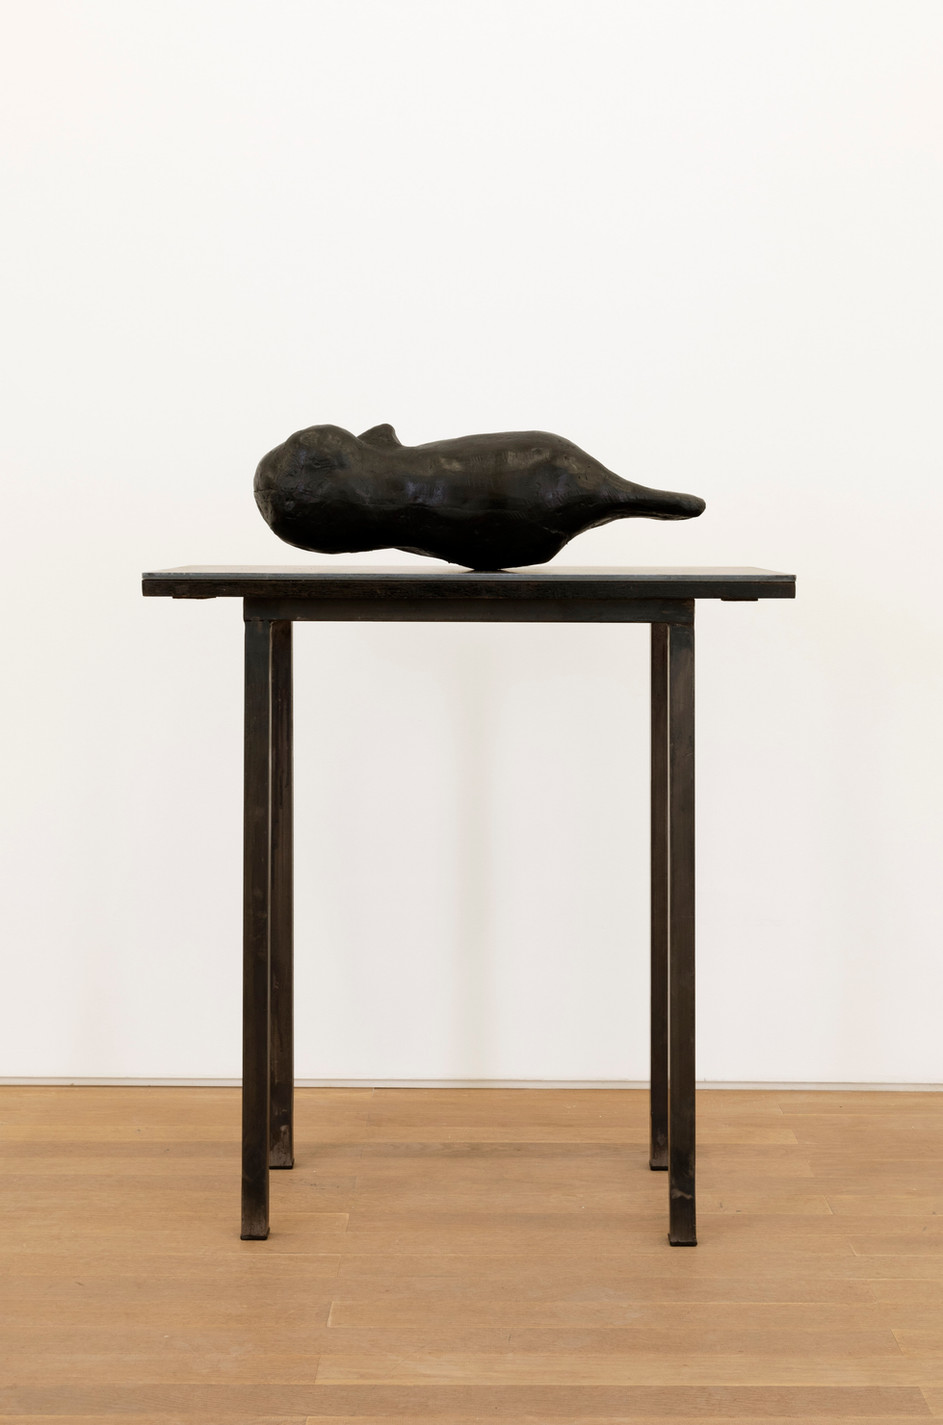 EDWARD LIPSKI Owl, 2020 rubber, wood, steel 19 x 56 x 18 cm (sculpture) 79 x 76 x 39 cm (plinth) unique